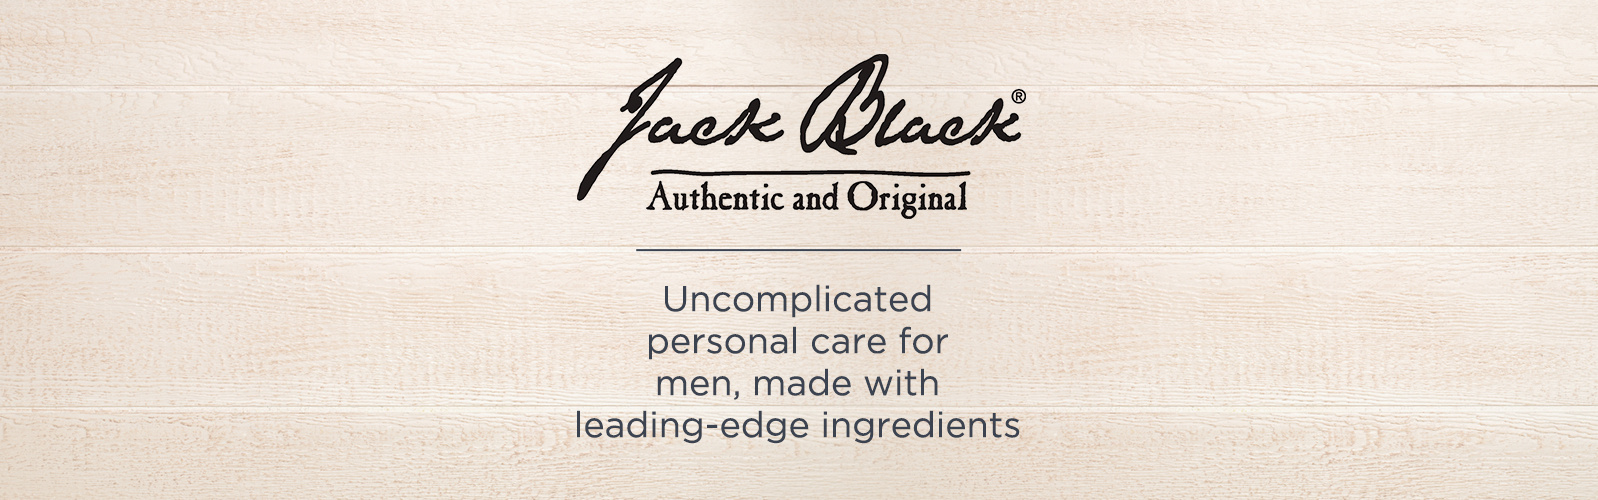 Jack Black Authentic and Original. Uncomplicated personal care for men, made with leading-edge ingredients